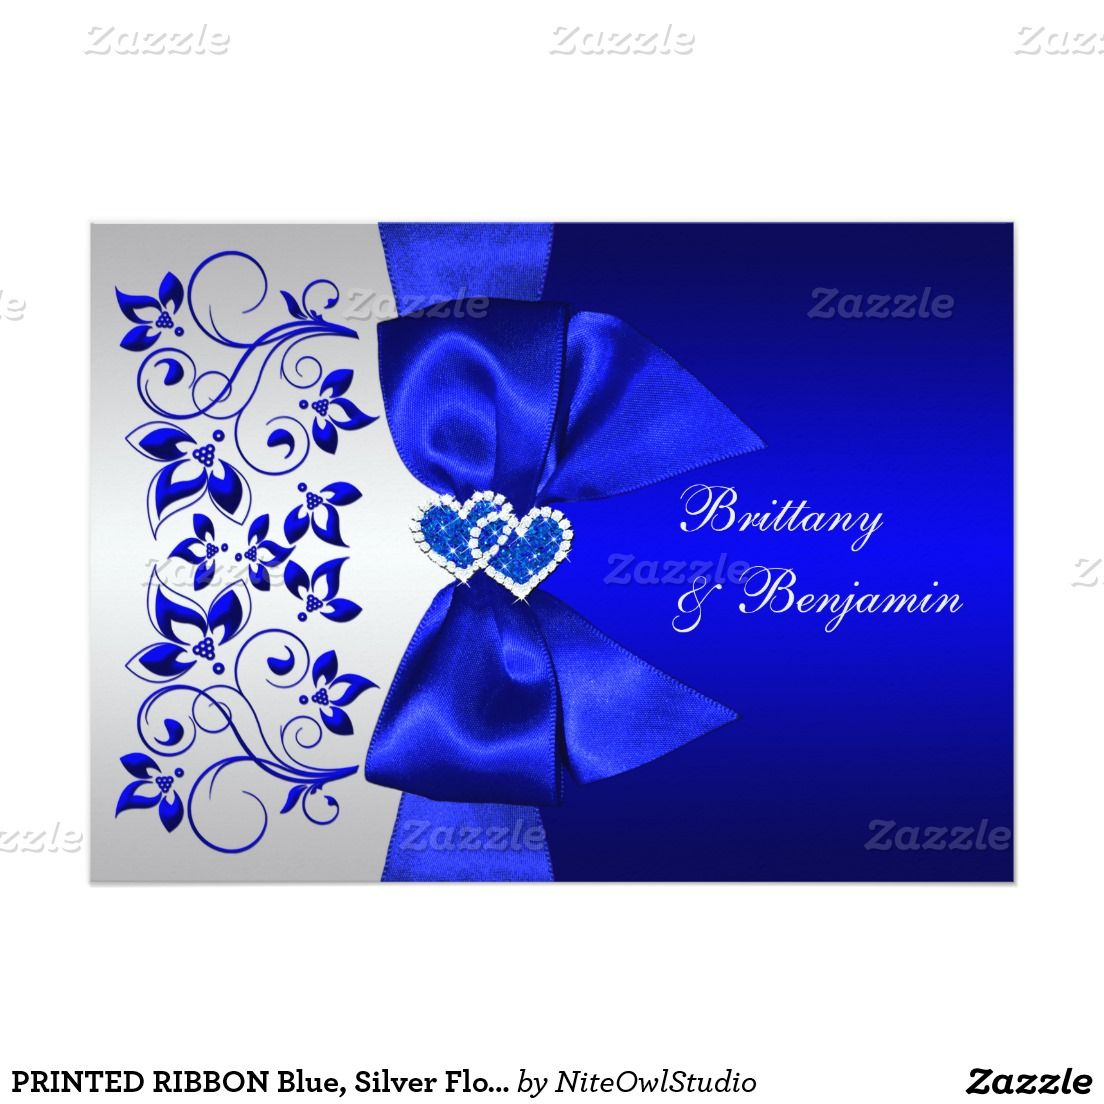 PRINTED RIBBON Blue, Silver Floral Wedding Invite ...